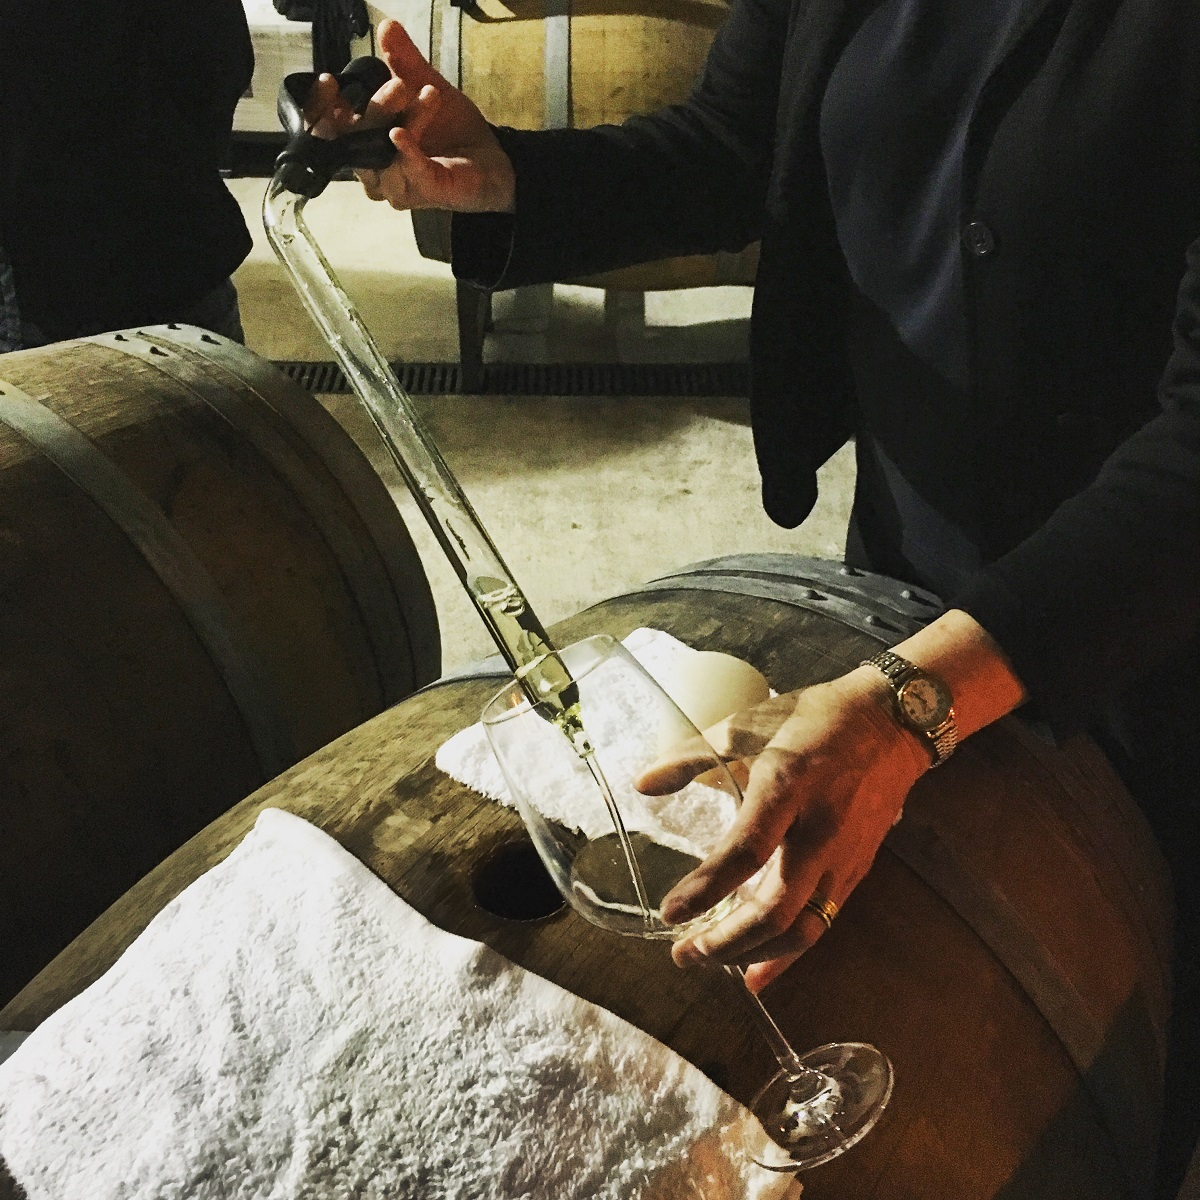 Invites to special member-only events -- such as this wine tasting direct from the barrels in the cellar at the winery -- are great perks of wine club membership, and great ways to broaden your knowledge of and appreciation for what you're drinking.